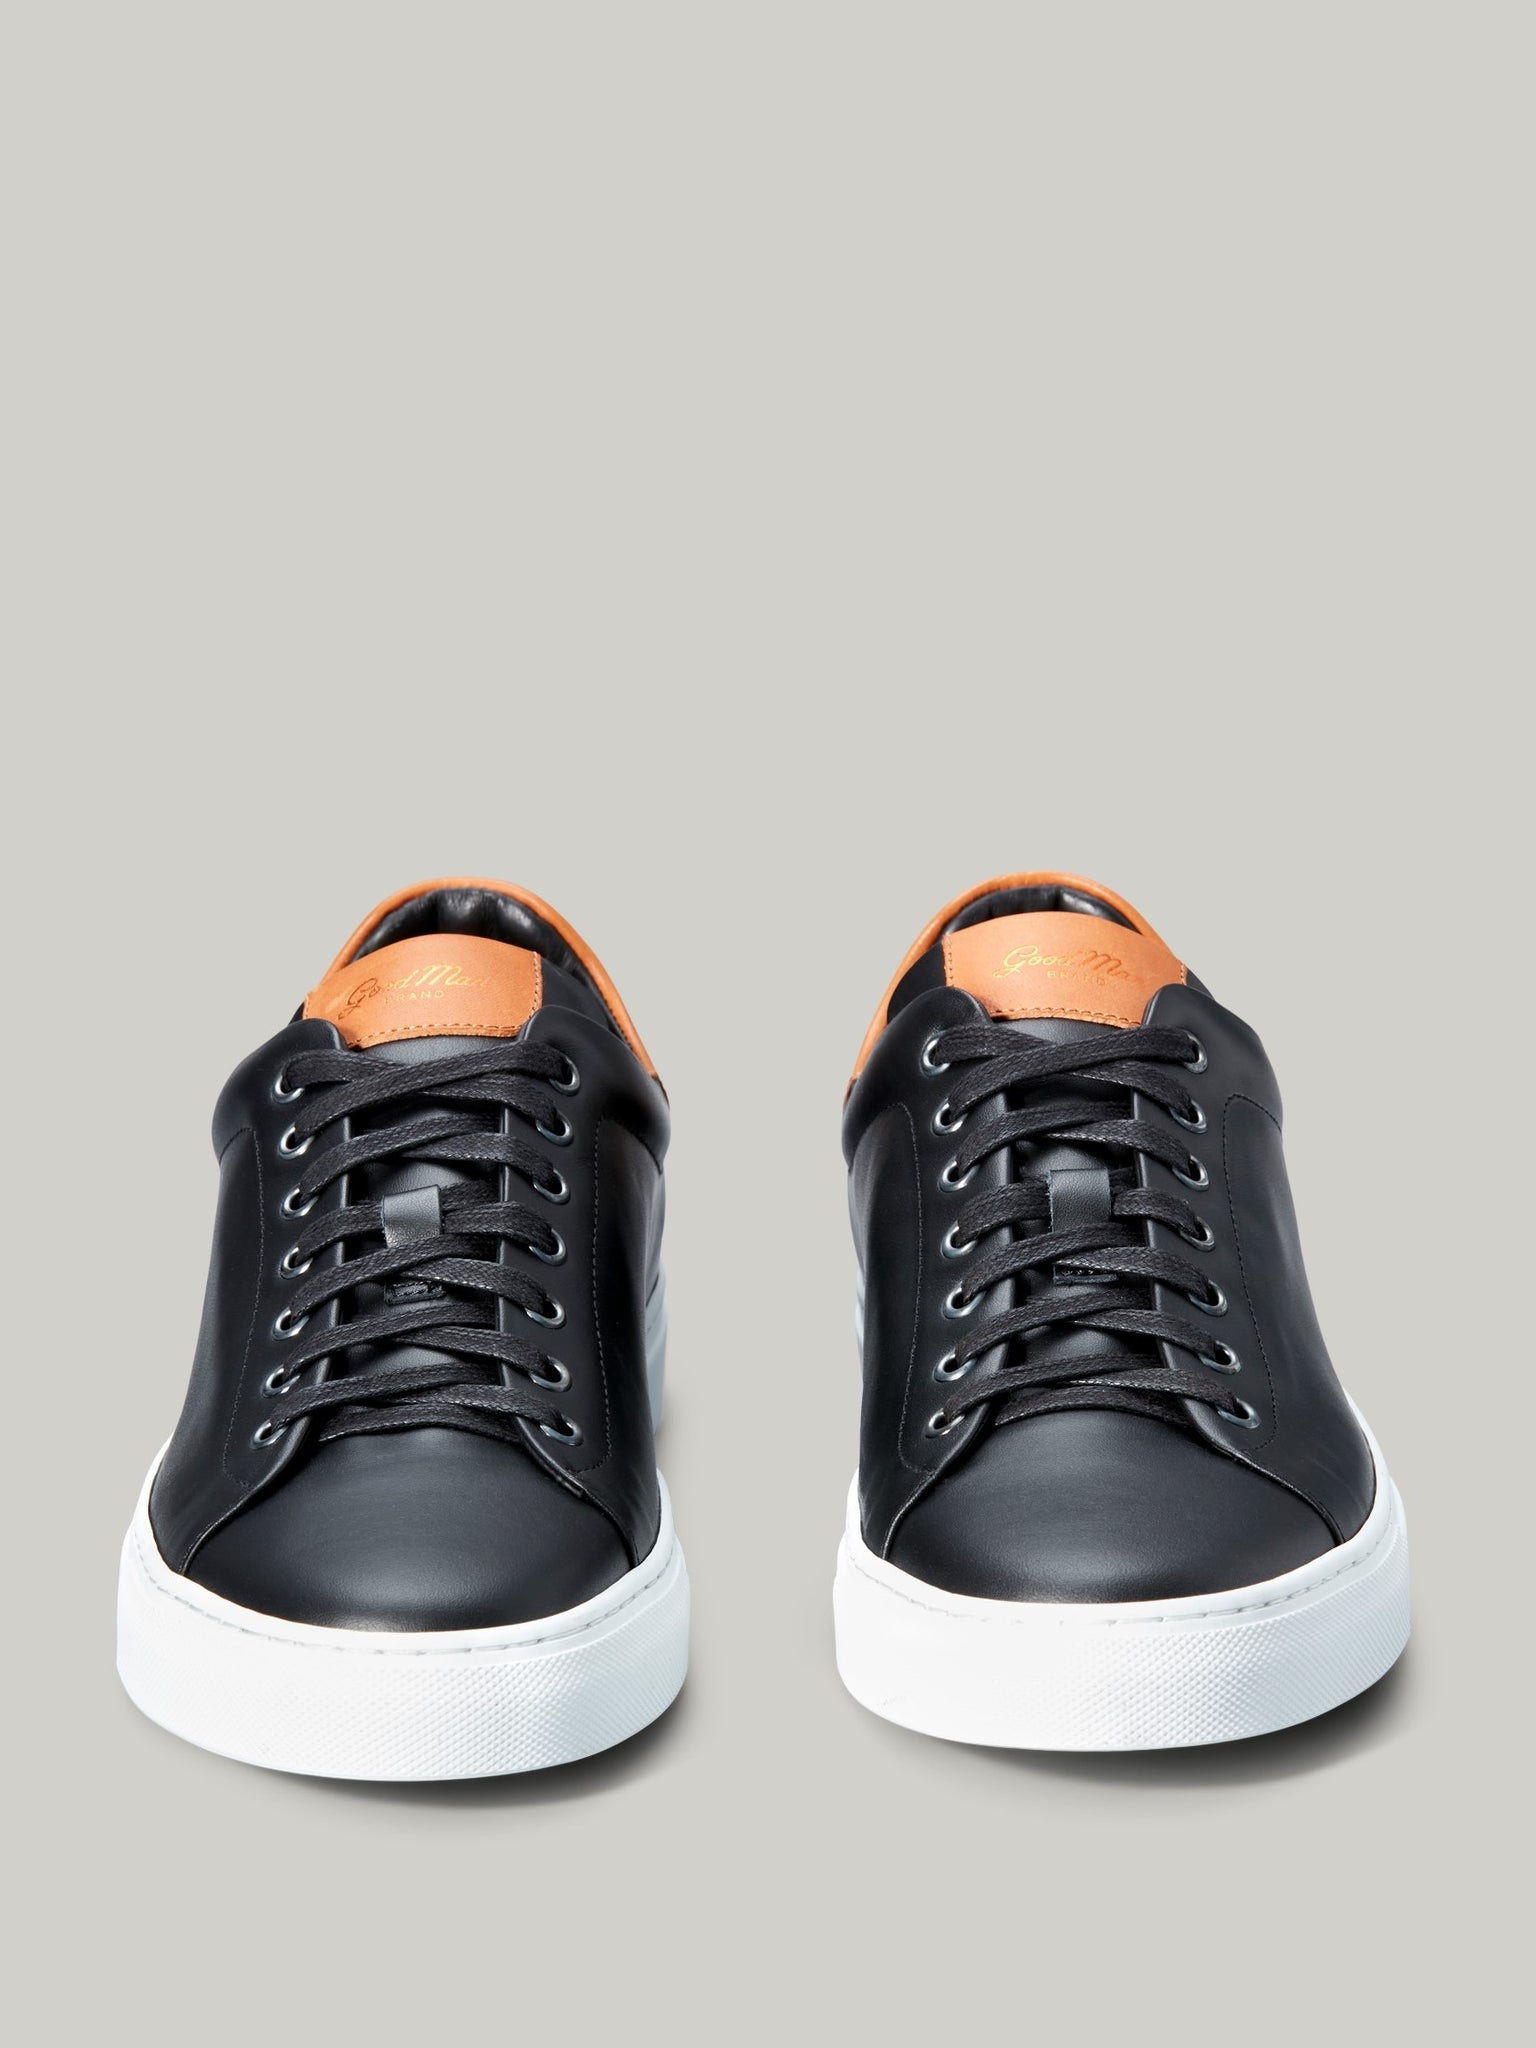 Legend Lo Top Sneaker - Black / Vachetta